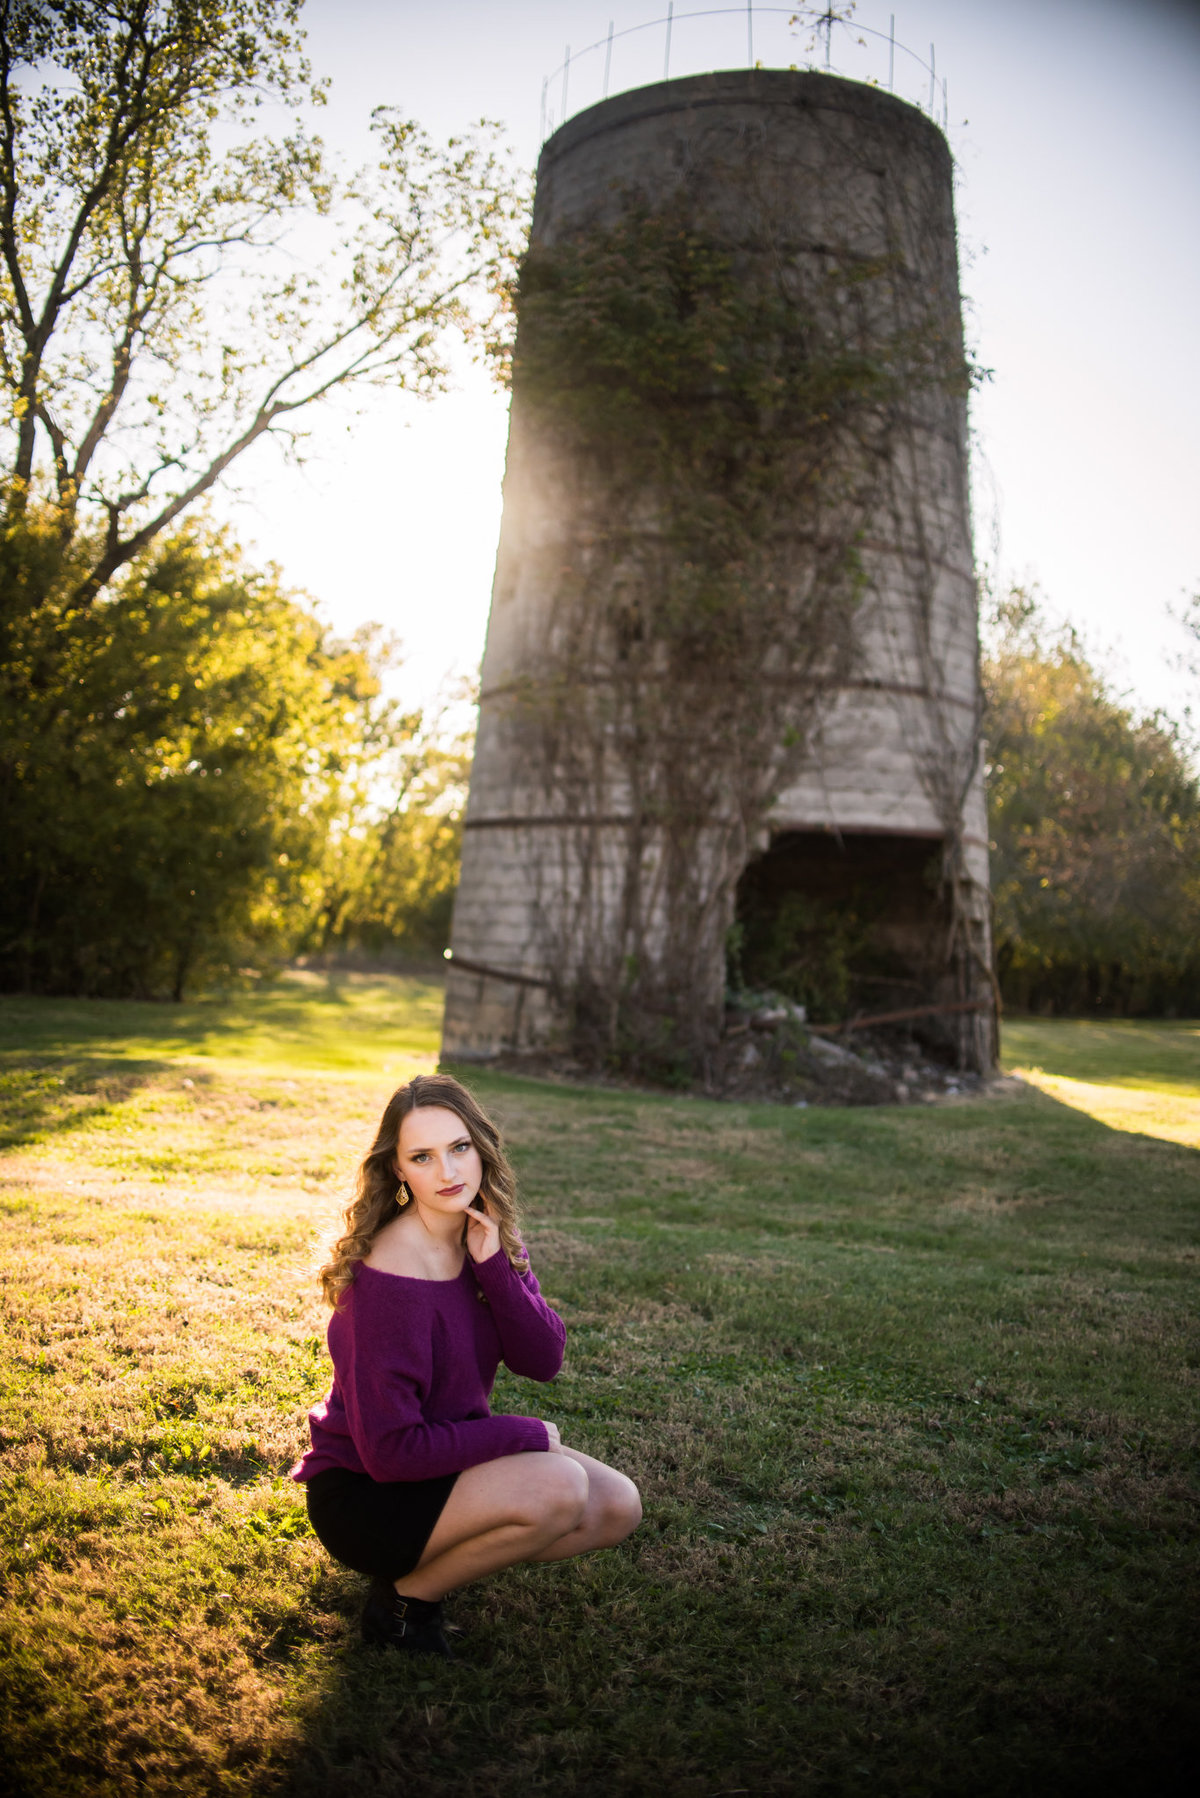 81Senior-photographer-in-sherman-denison-mckinney-texas-